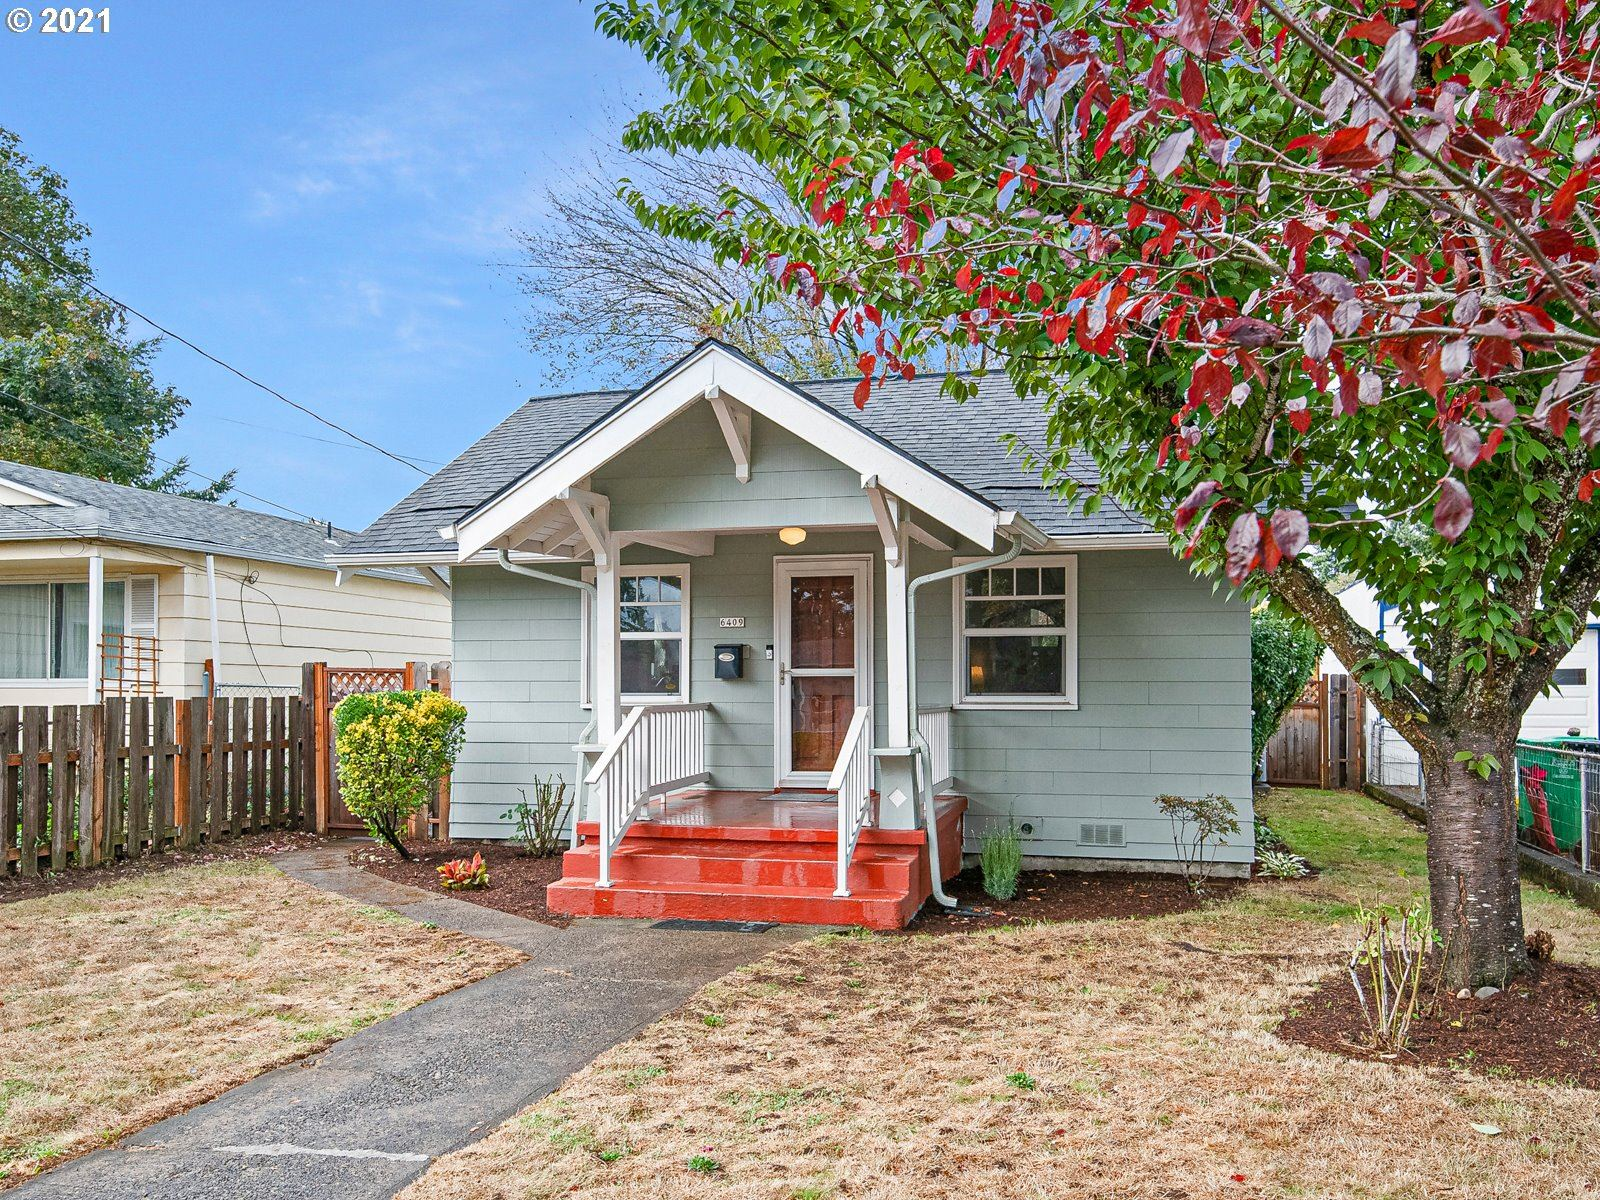 6409 SE 60TH AVE, Portland, OR 97206 - MLS#: 21123996